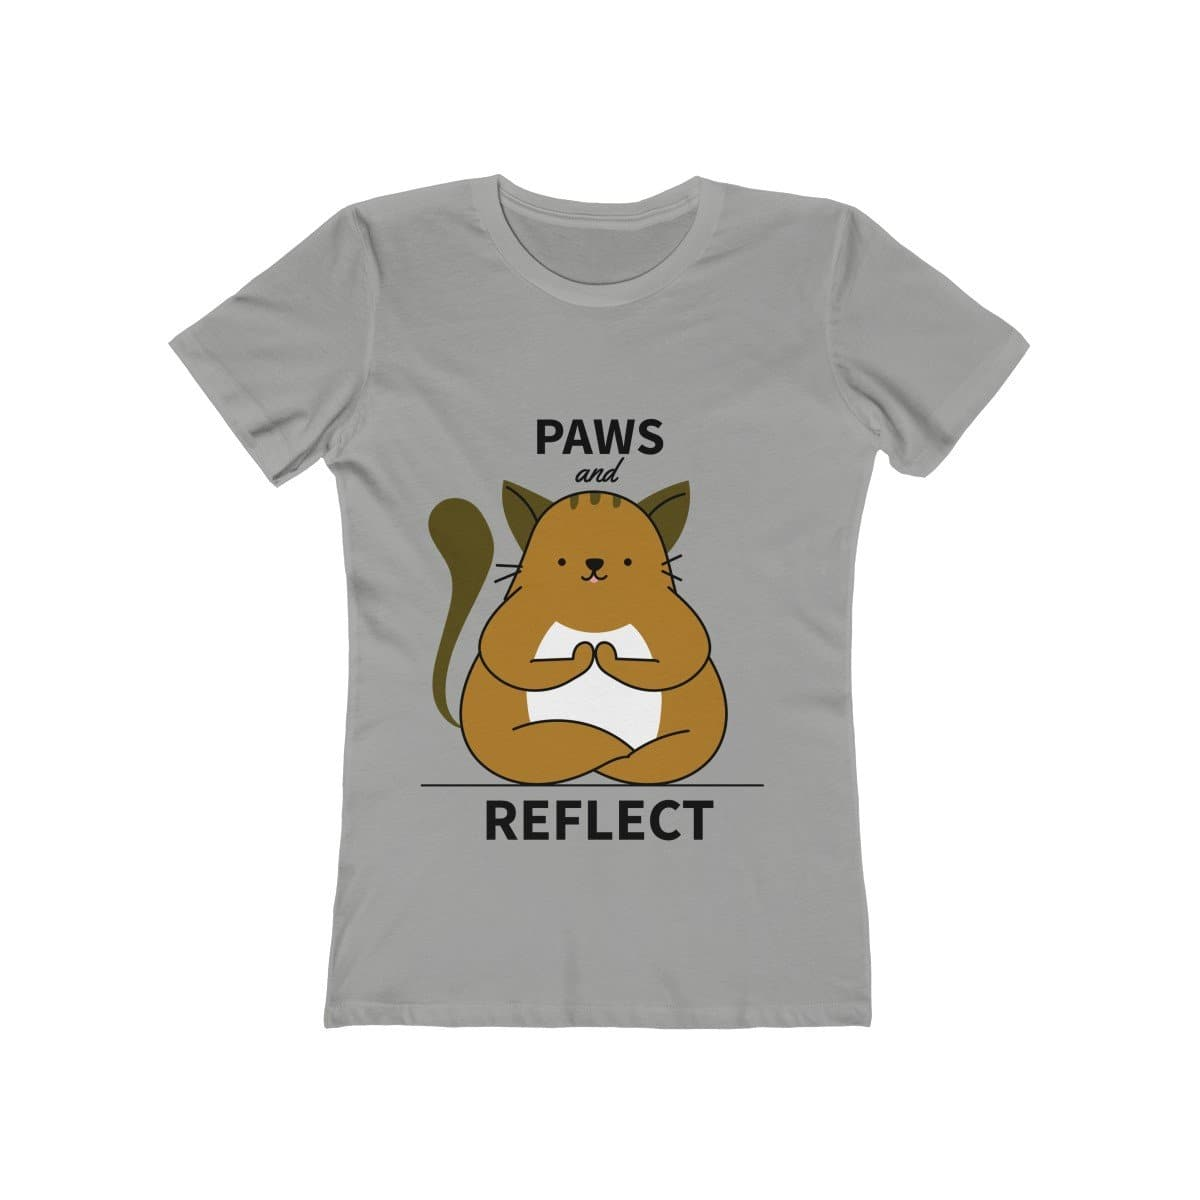 Meditating Cat Women's Tee - Sutra Wear